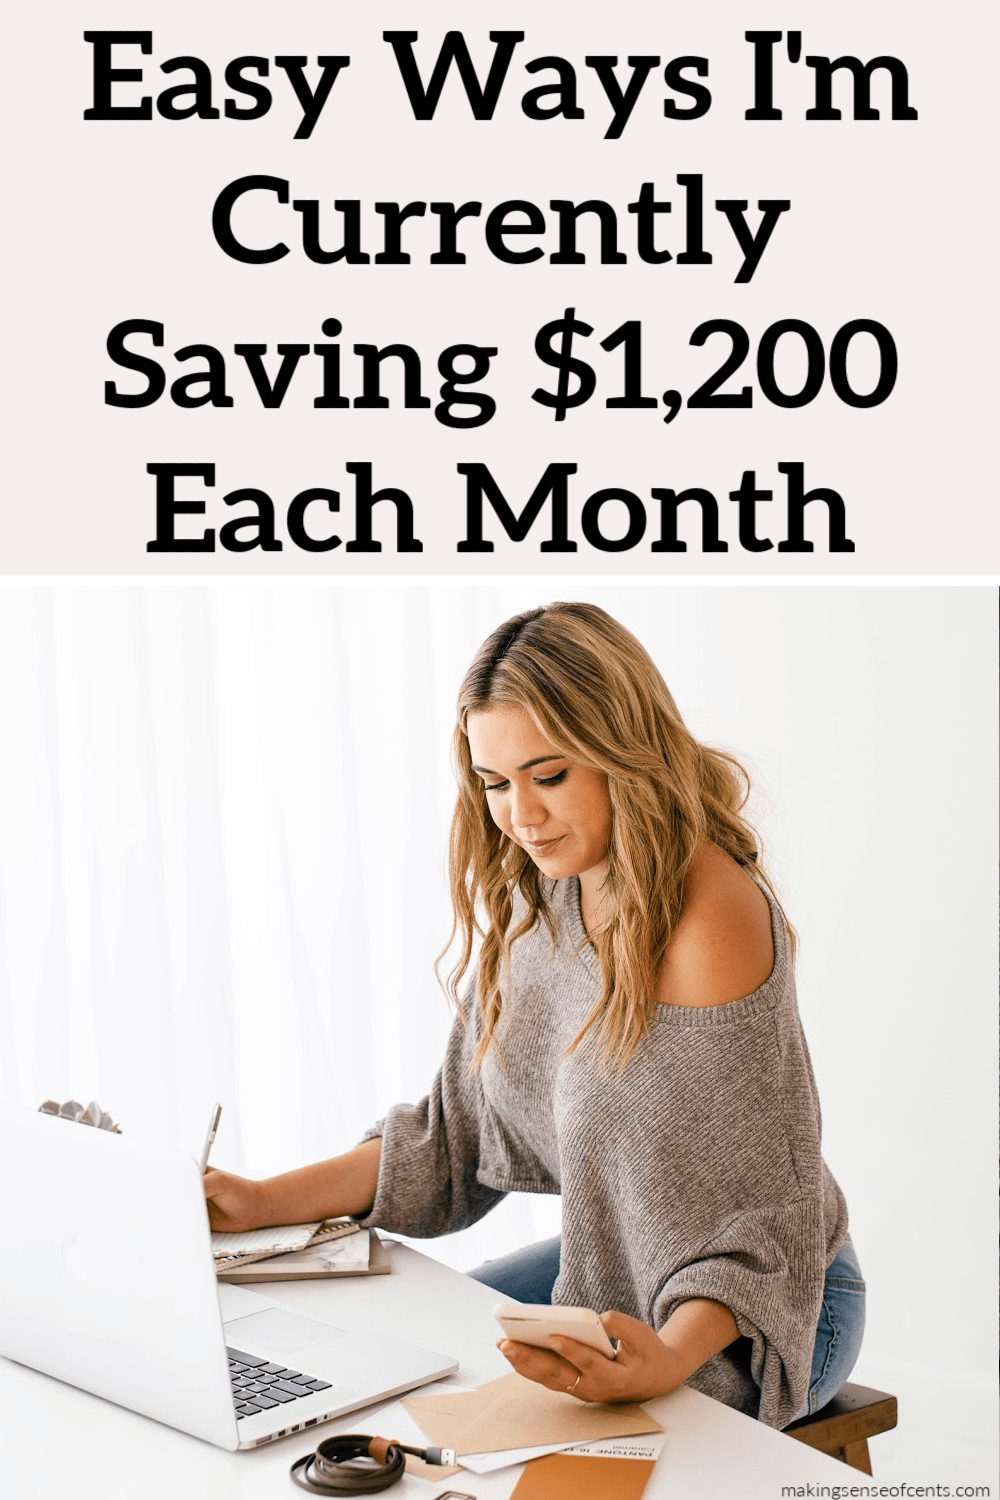 Easy Ways I'm Currently Saving $1,200 Each Month